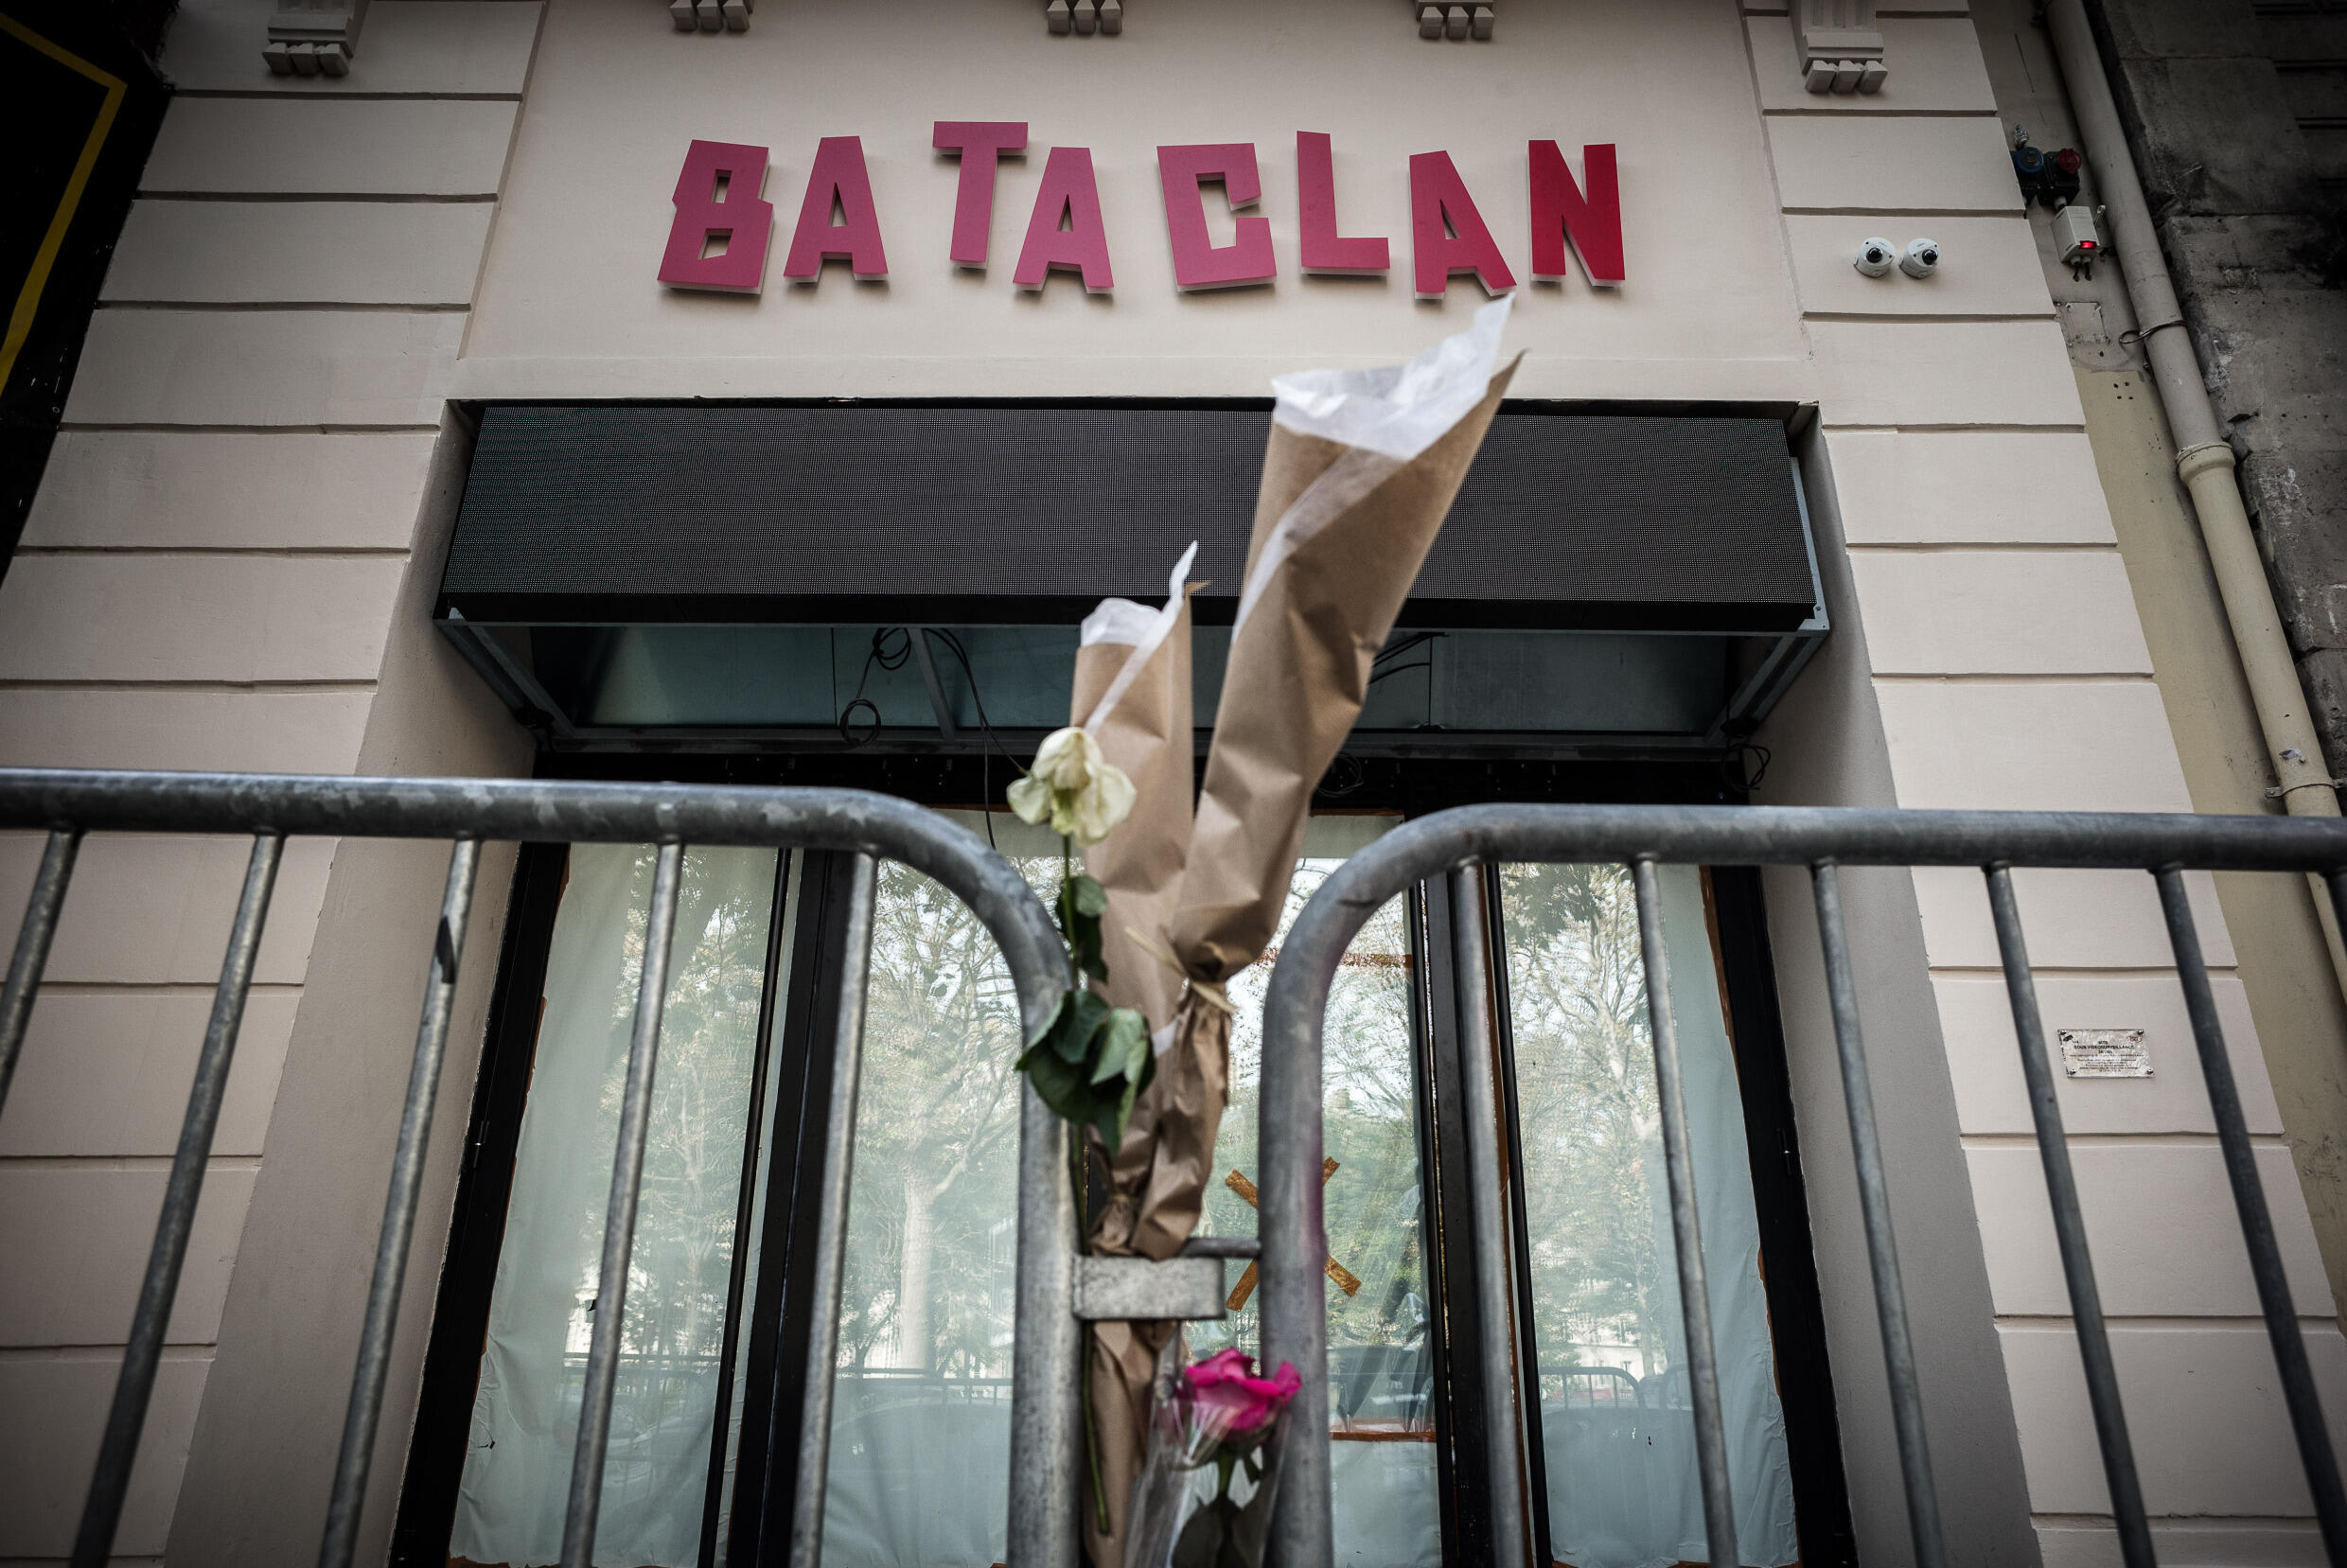 The bloodbath at the Bataclan on November 13, 2015 lasted three hours and left 90 people dead